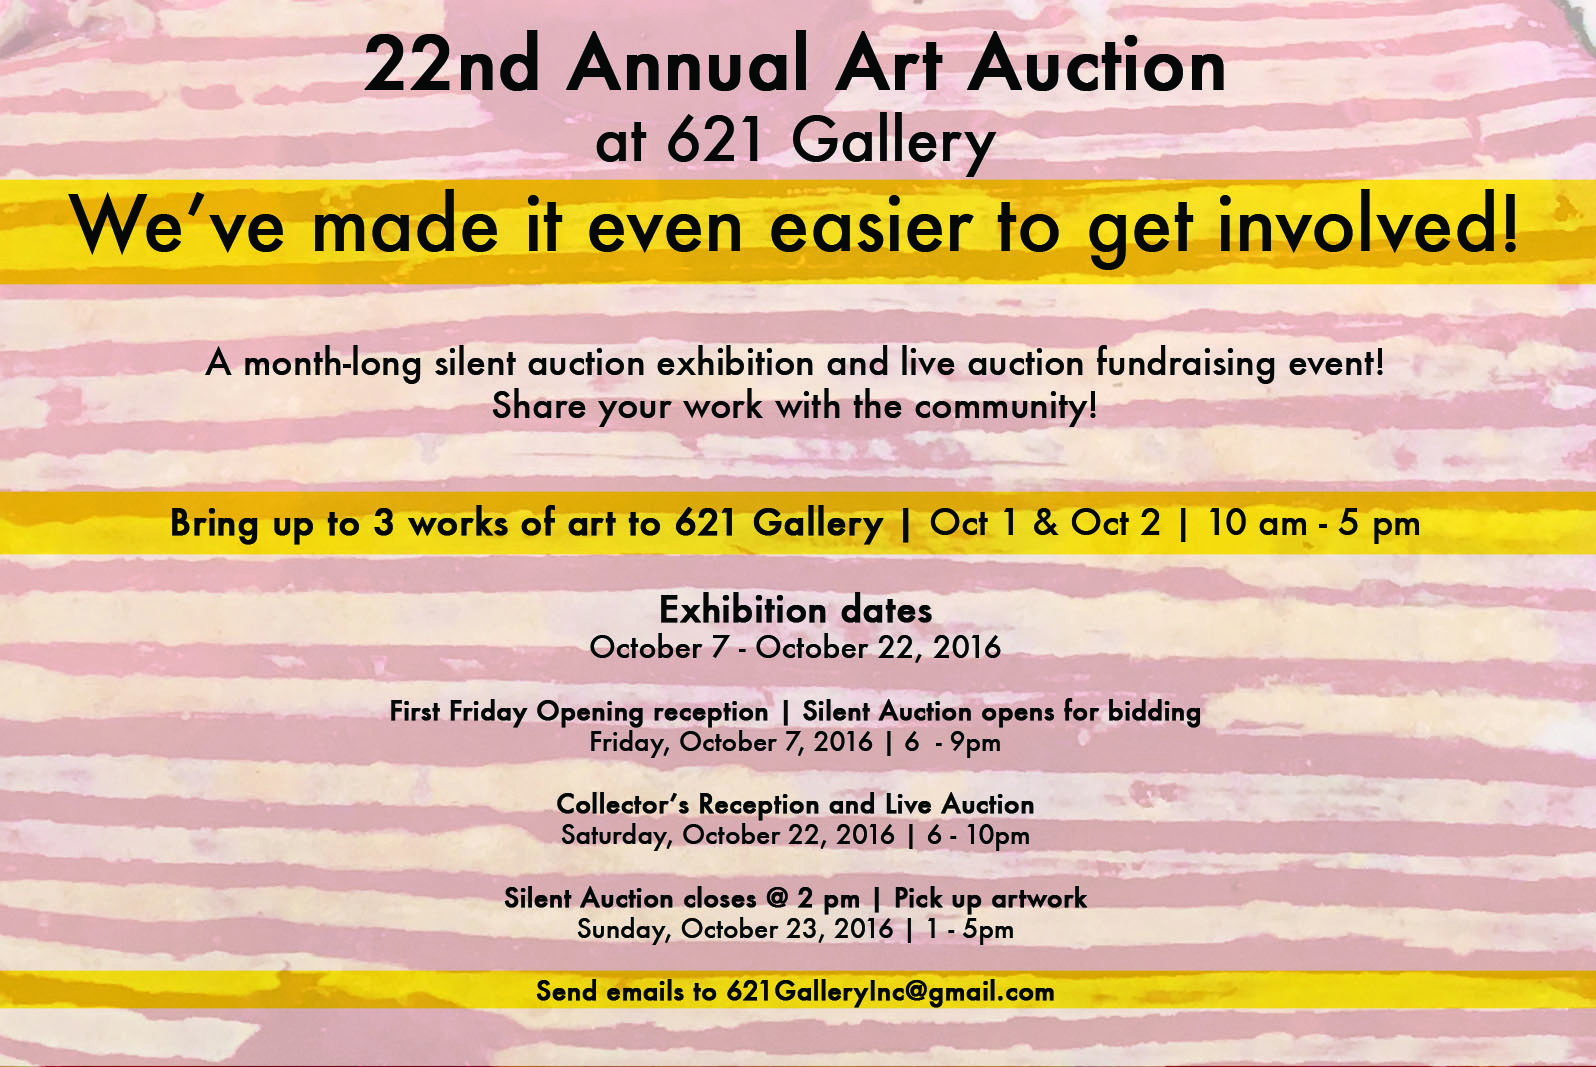 621-gallery-22nd-annual-auction-call-2016